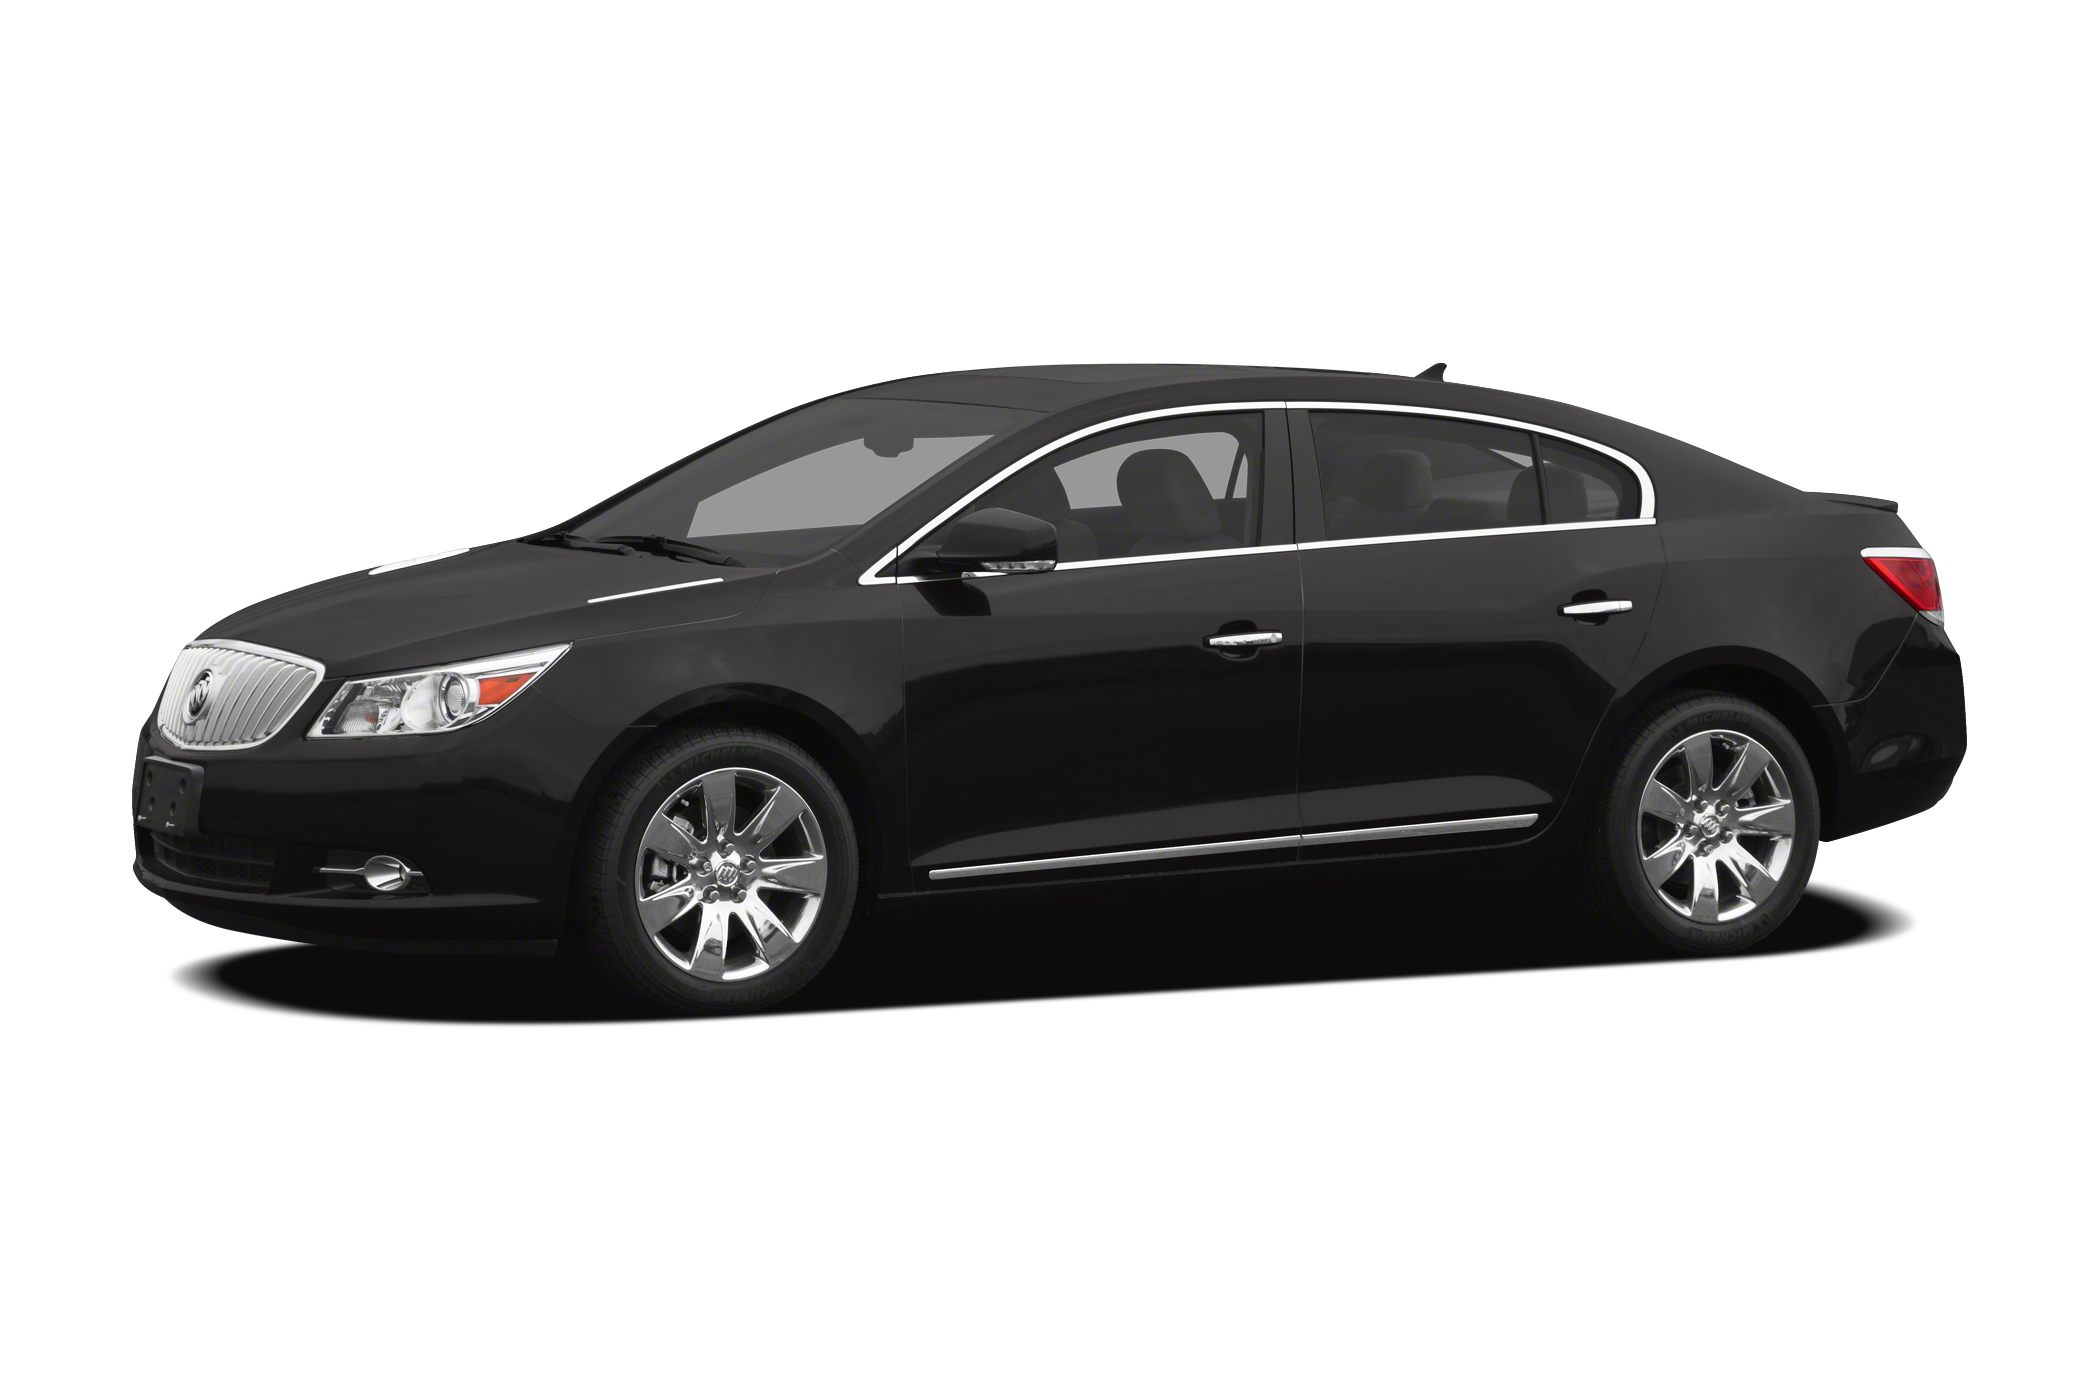 2012 Buick LaCrosse Touring Sedan for sale in Memphis for $23,990 with 41,994 miles.